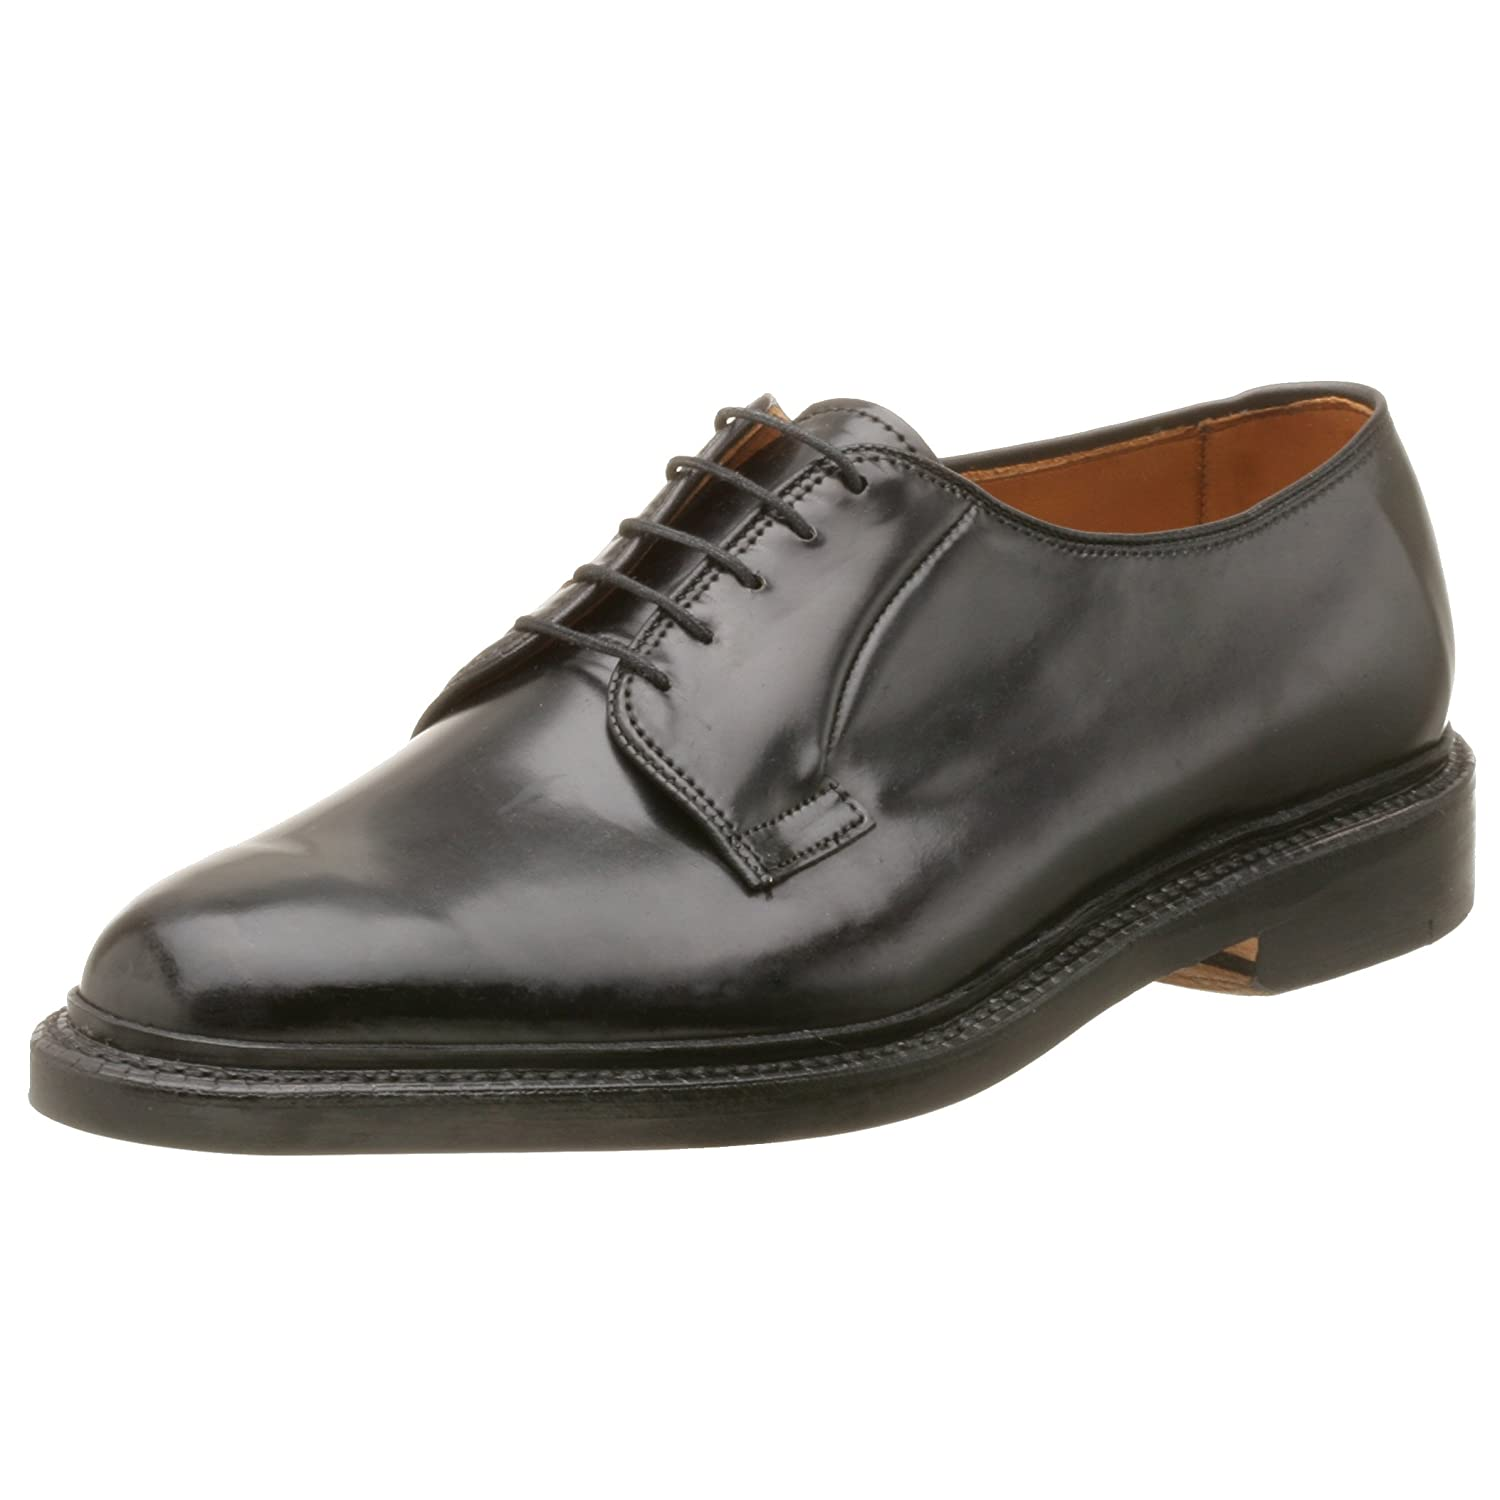 super popular 8c4e6 9aeda Allen Edmonds Men's Leeds Genuine Shell Cordovan Plain Toe Oxford